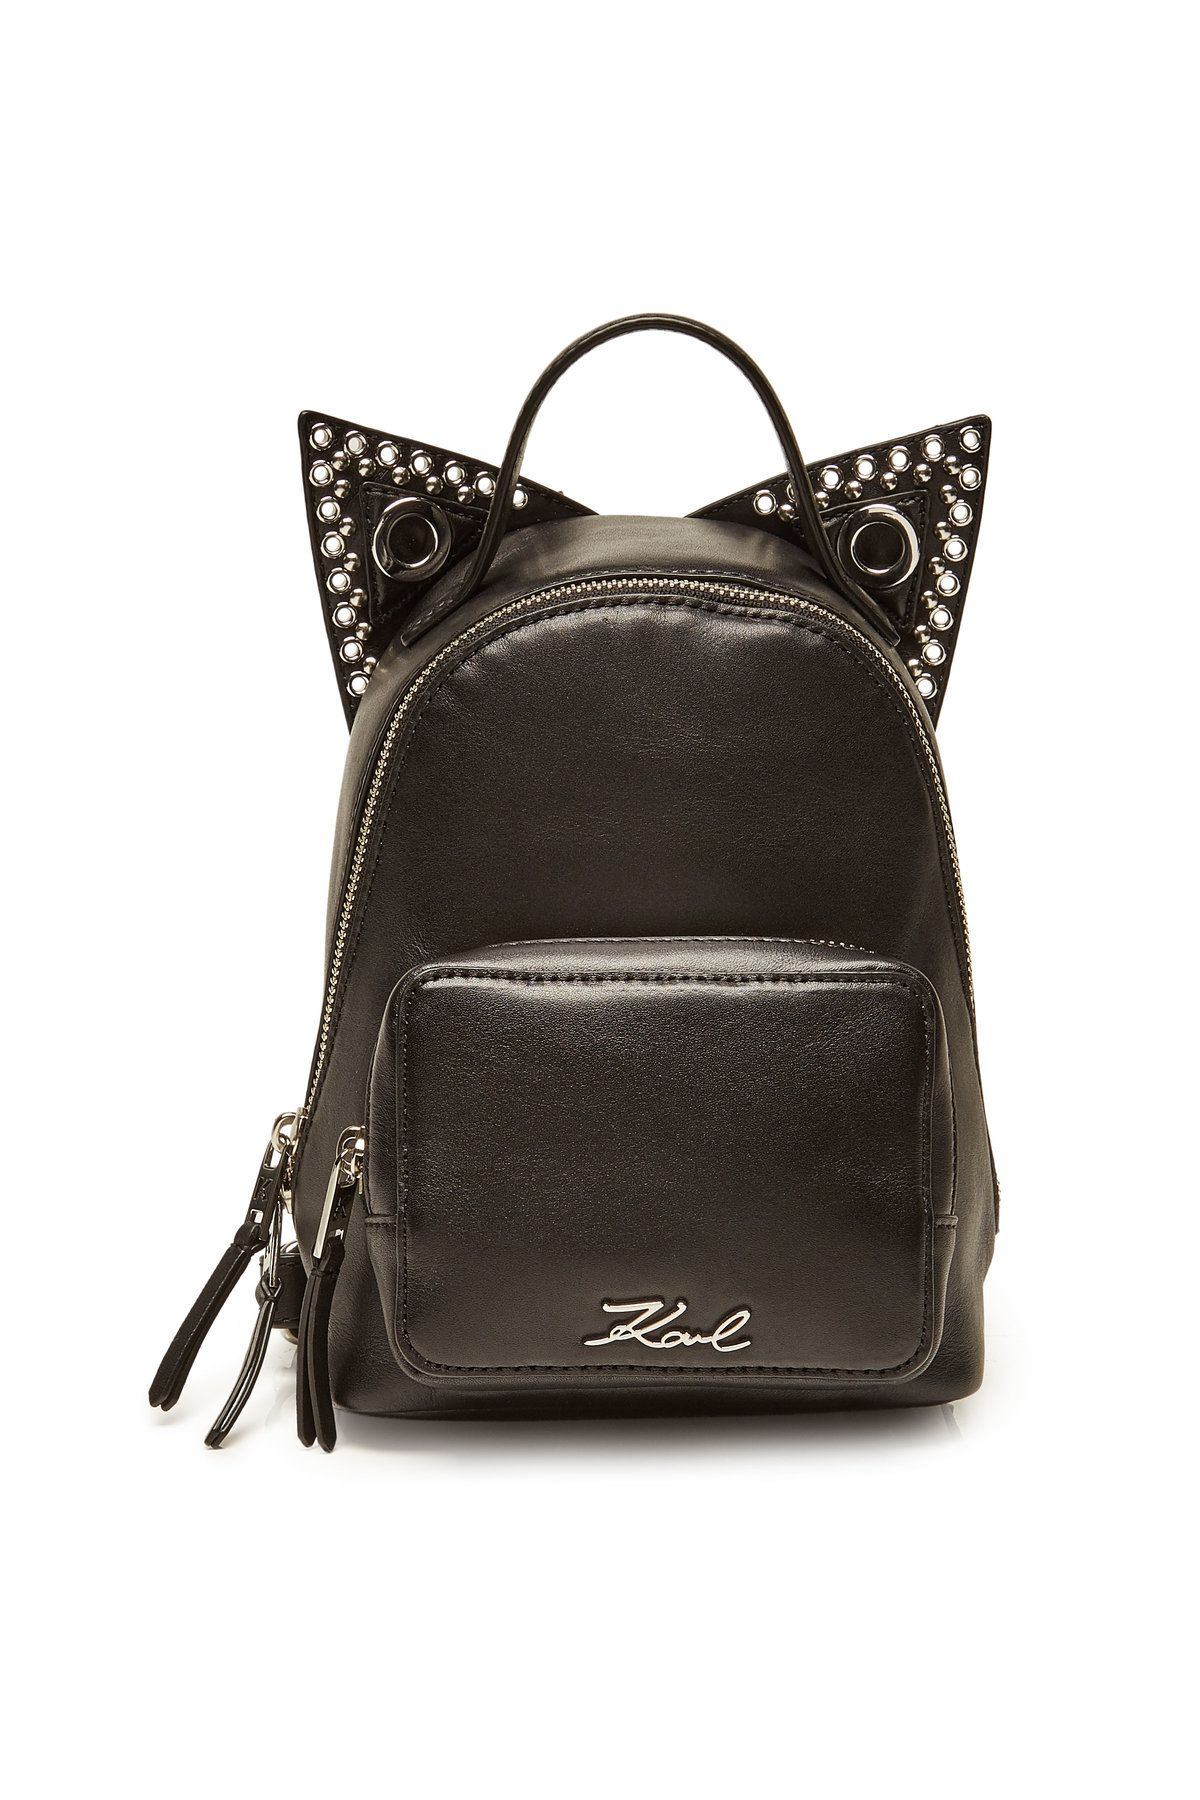 57afc09ff30 Karl Lagerfeld - K/Rocky Choupette Mini Leather Backpack on STYLEBOP.com